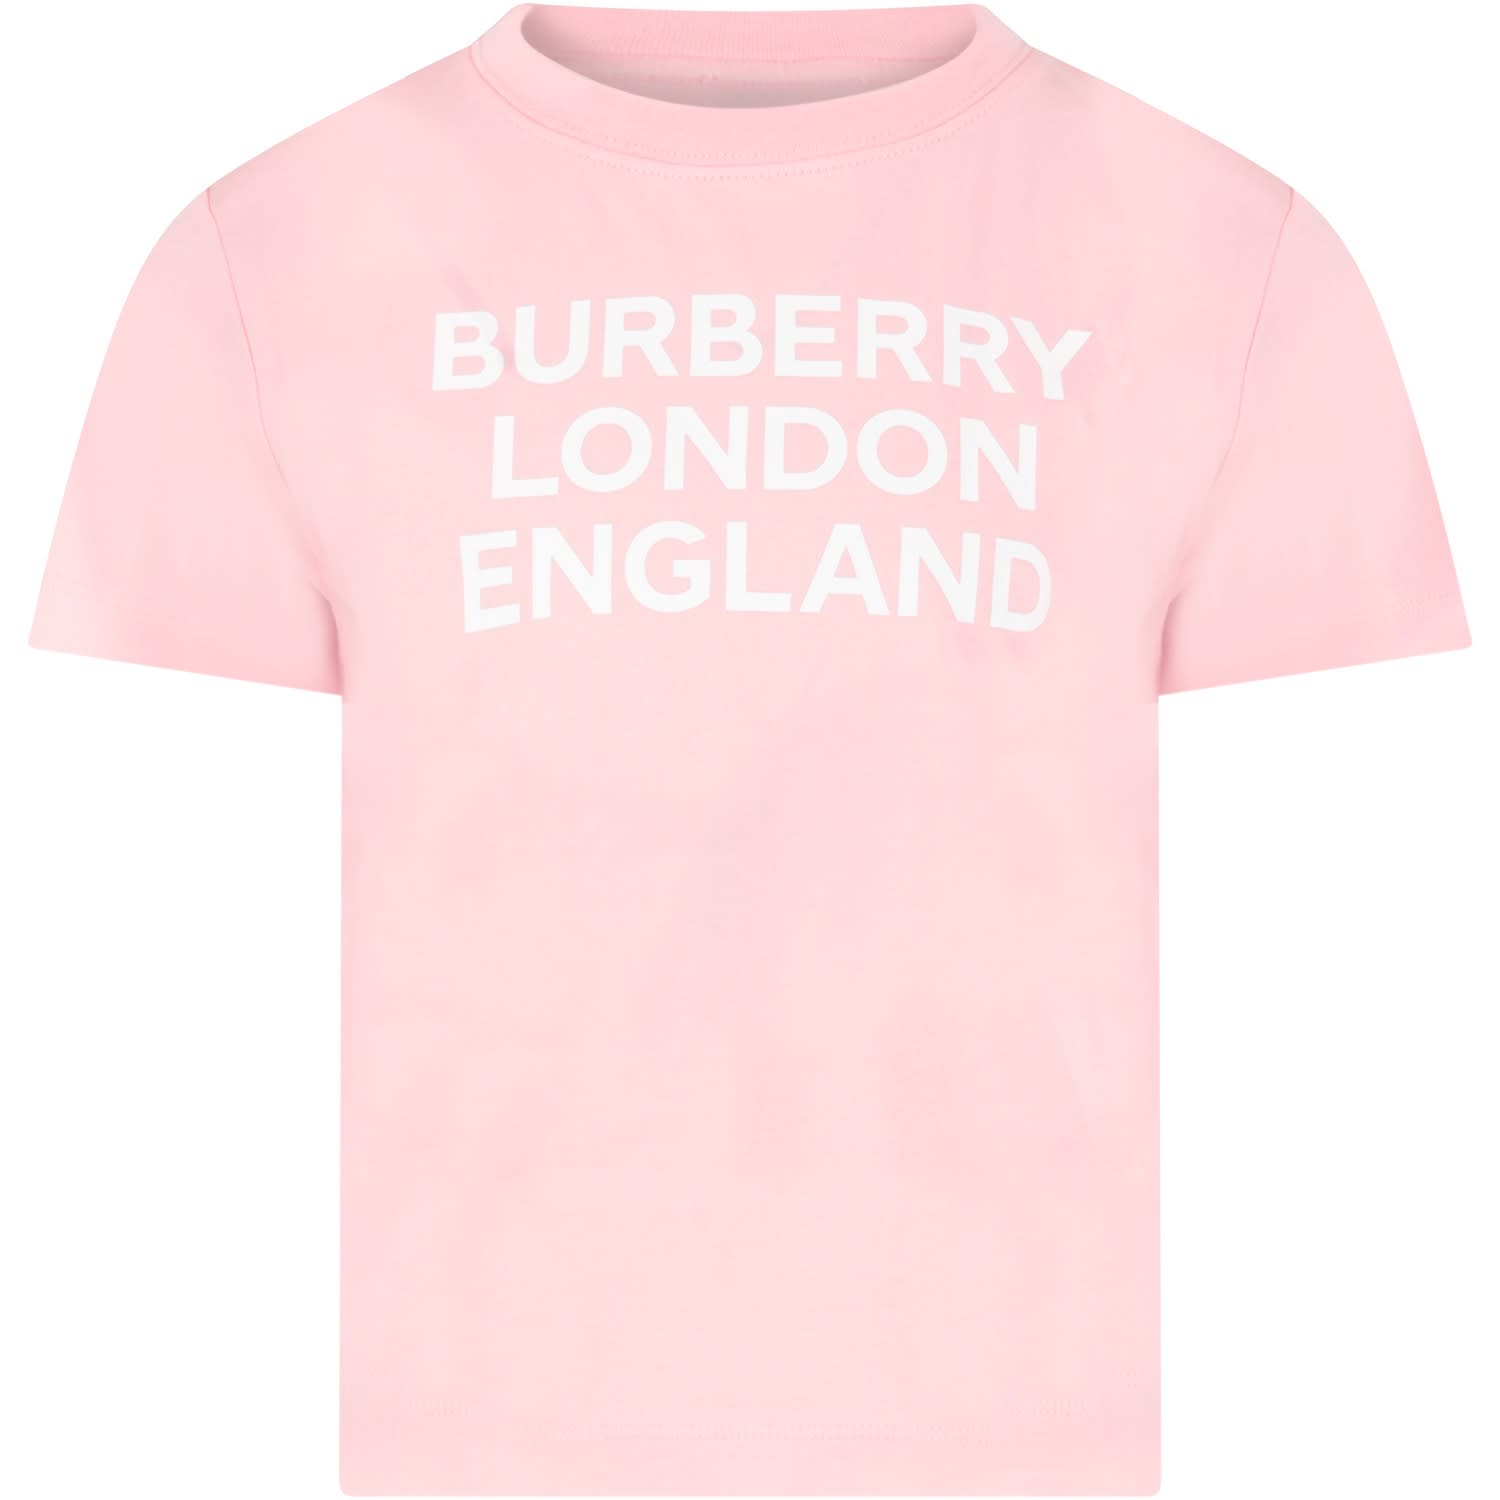 Burberry PINK T-SHIRT FOR GIRL WITH LOGO